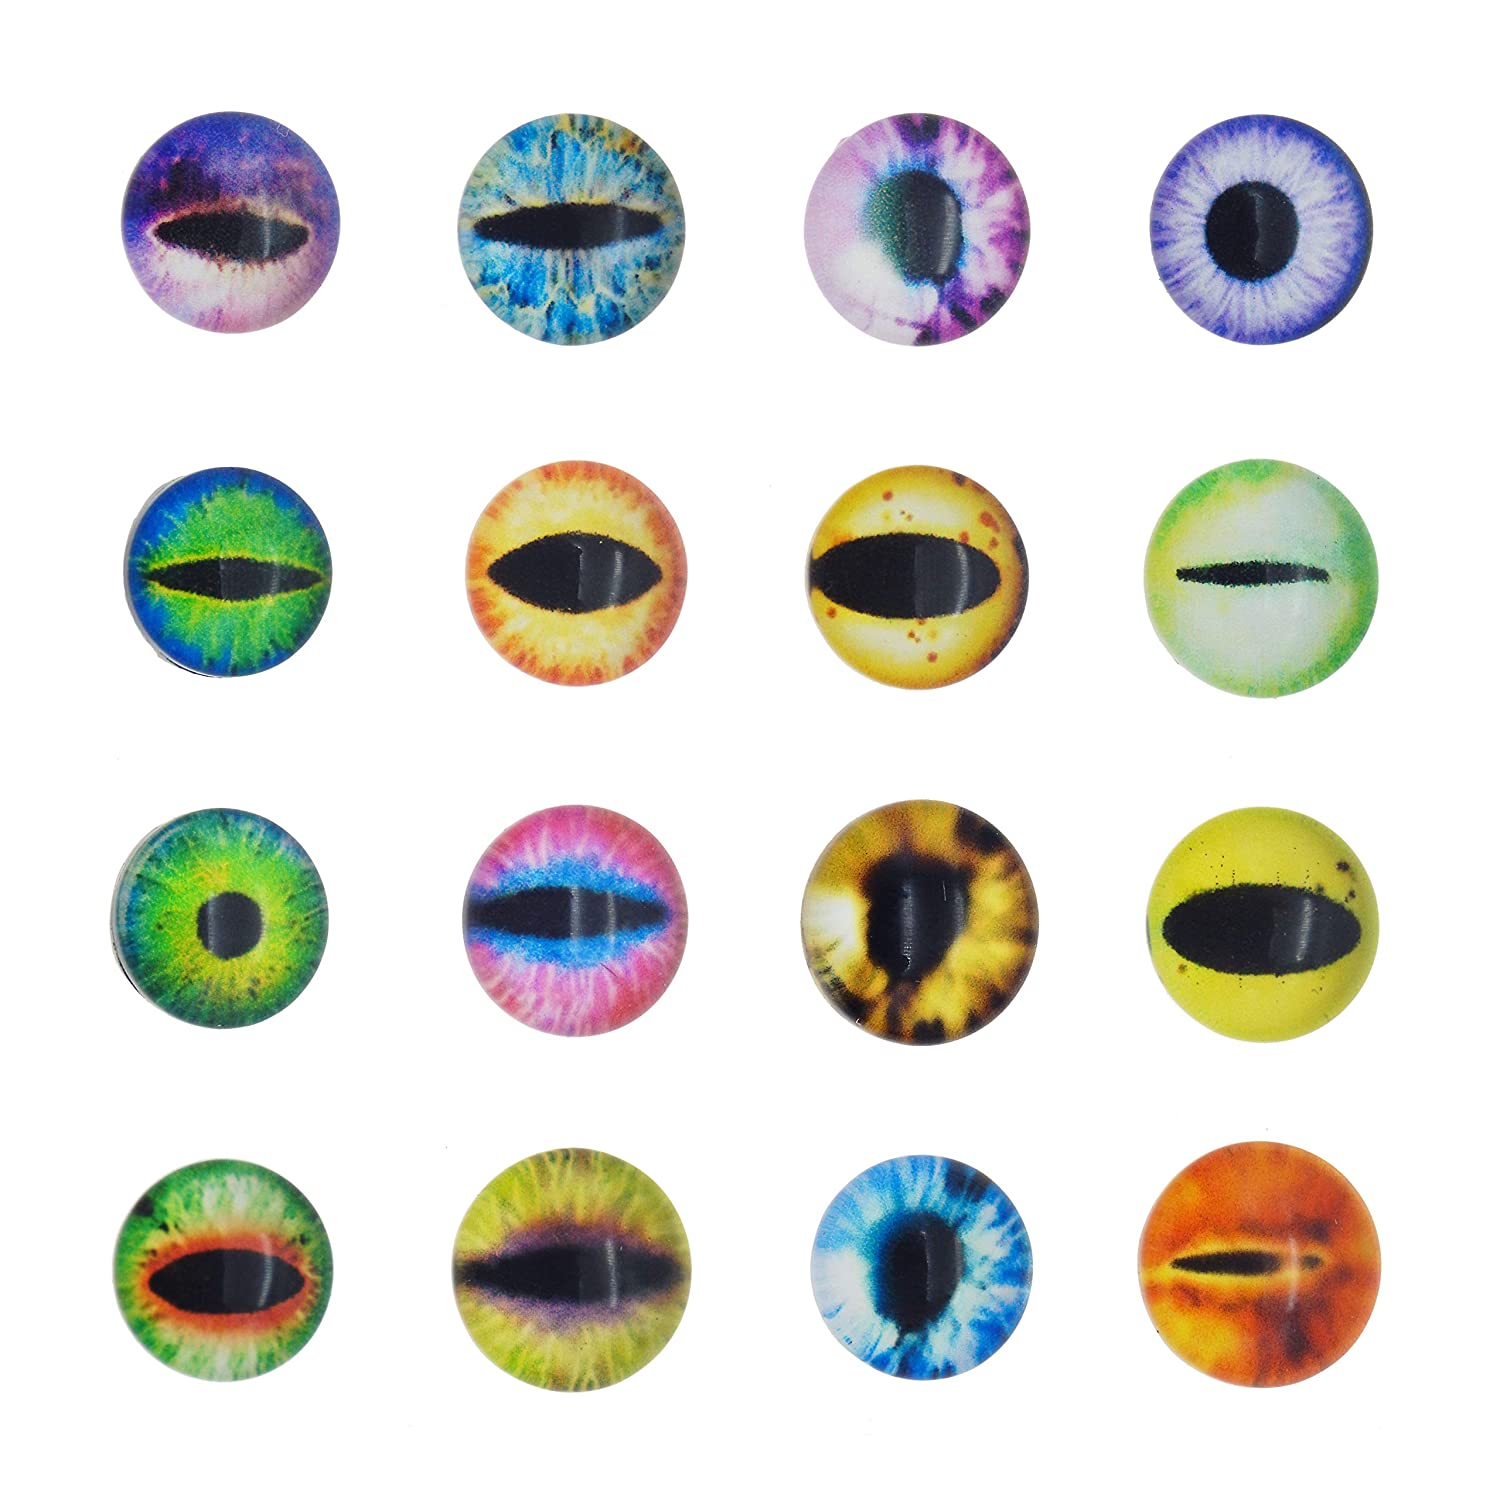 100PCS 25MM Round Glass Dragon Cat Eye Craft Cabochon Cameo for Jewelry Bezel Setting or Doll Eyes Crafts Making Julie Wang